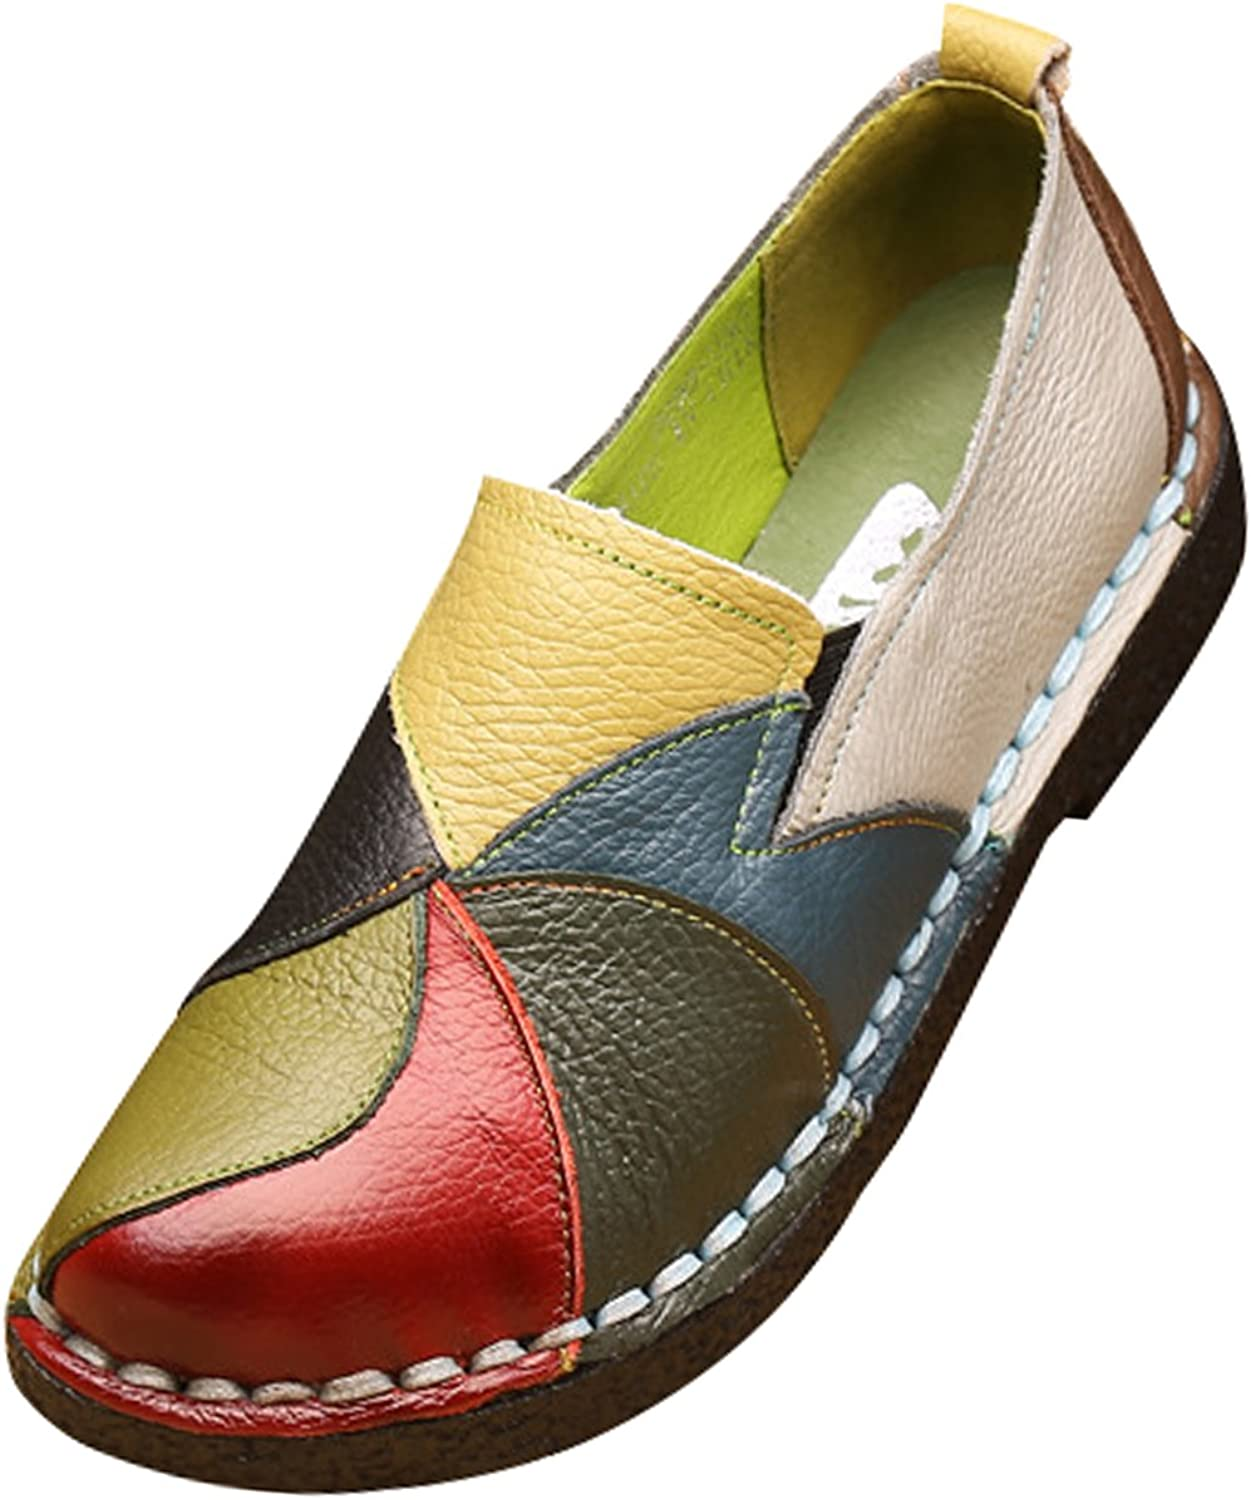 Zoulee Women's Leather Spell color Low-Heeled shoes Pregnant shoes Driving shoes